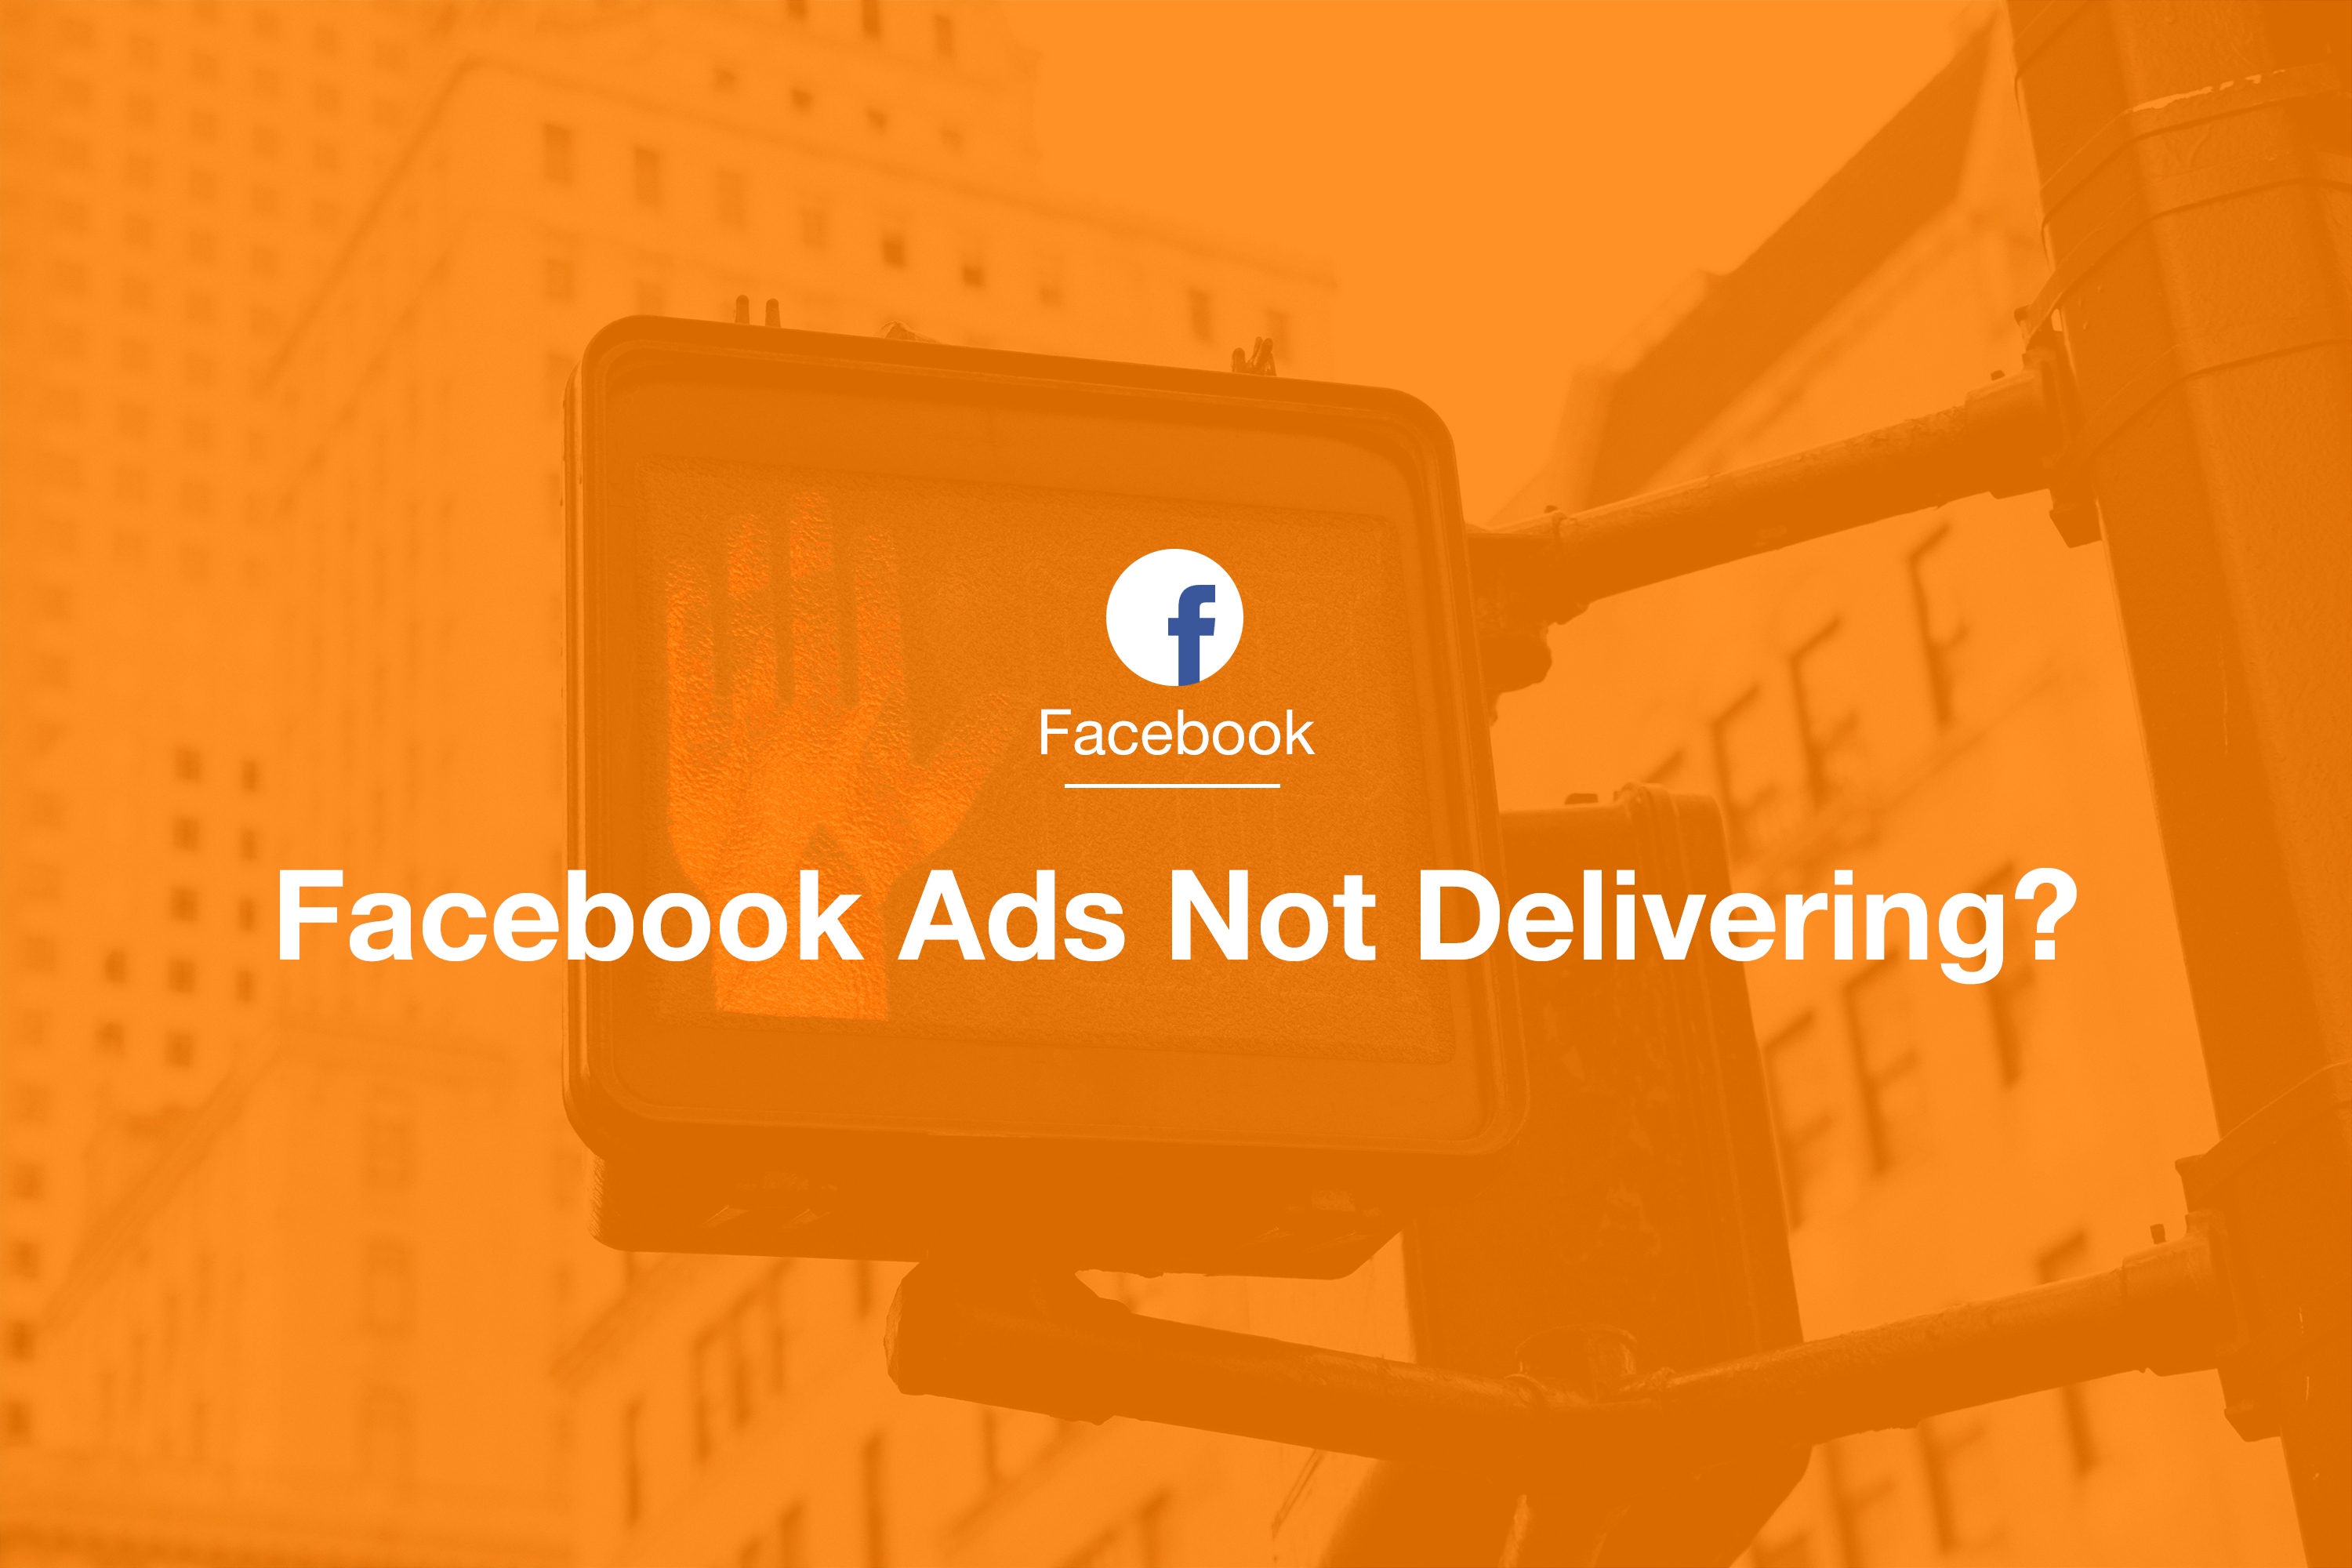 Facebook Ads Not Delivering? Avoid the Facebook Slap and Boost Conversion Rates